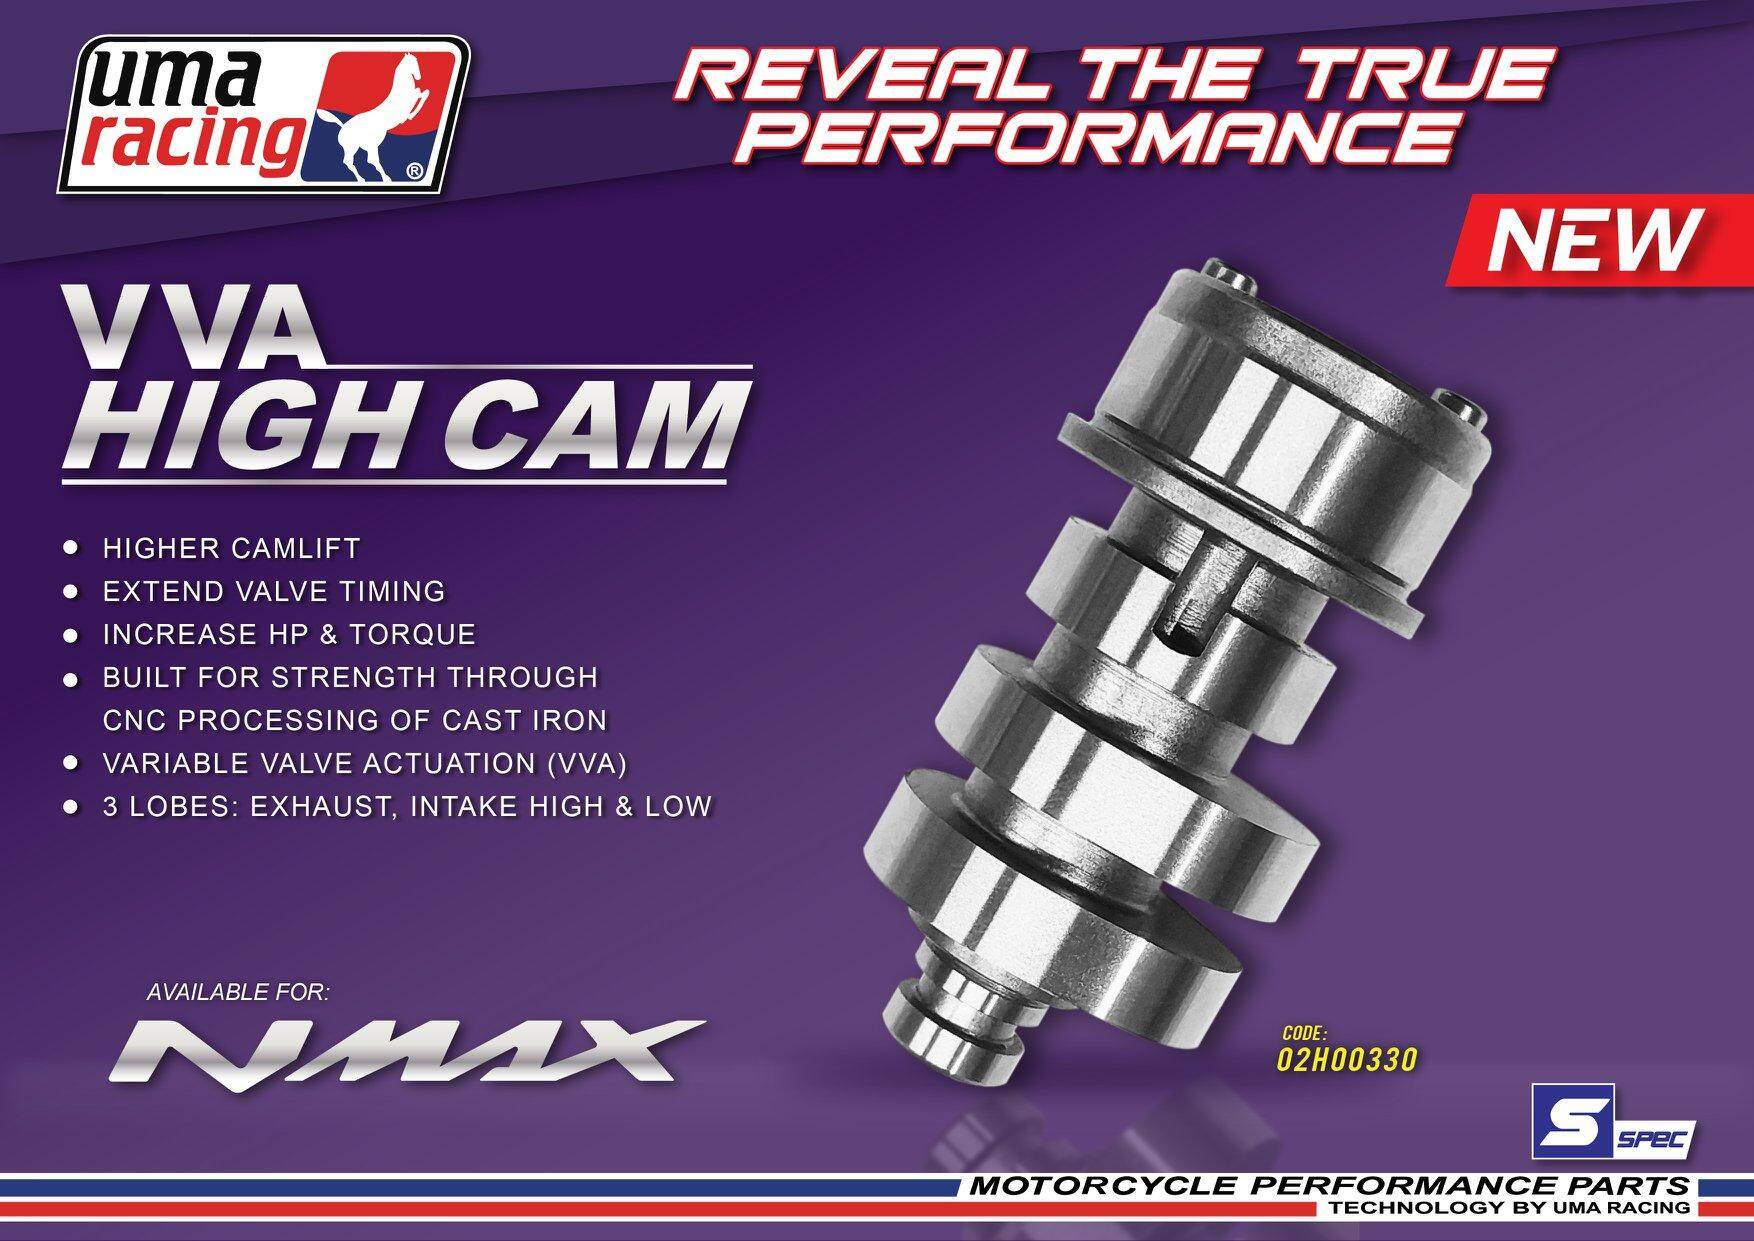 UMA RACING VVA HIGH CAM NMAX 155